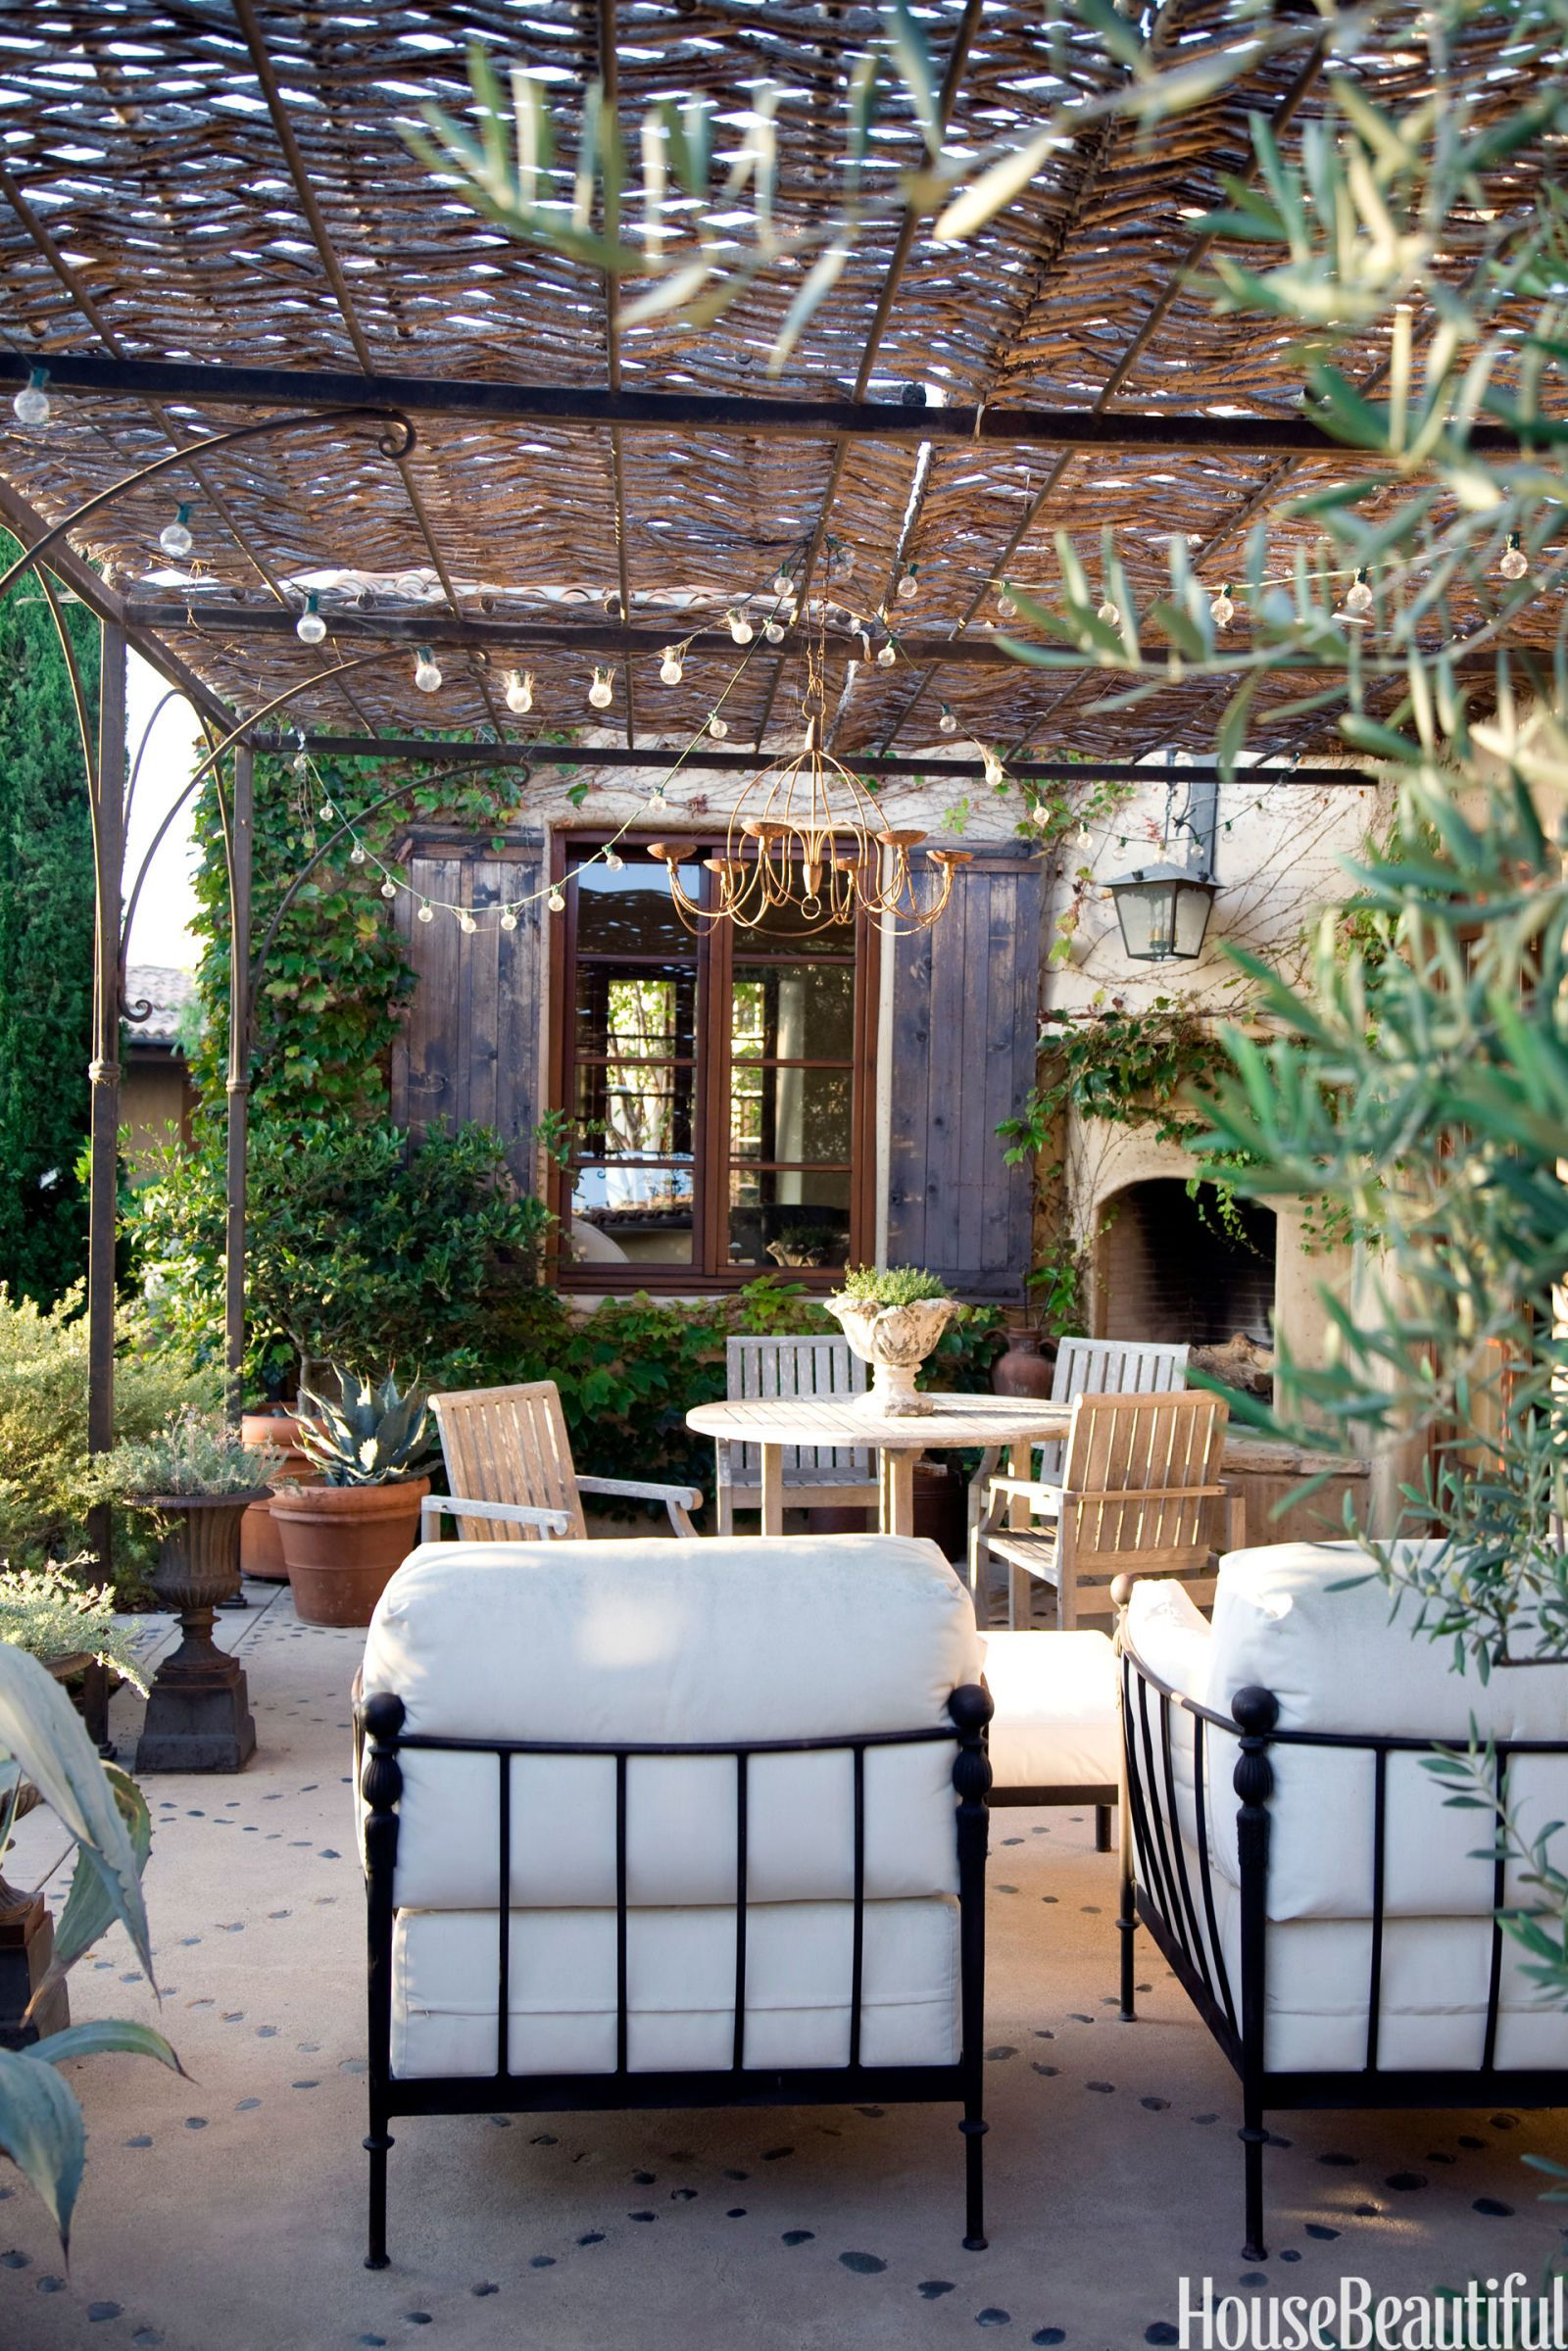 5 Most Popular Pins on Pinterest This Week: Decluttering Tips, A Romantic Patio, and More